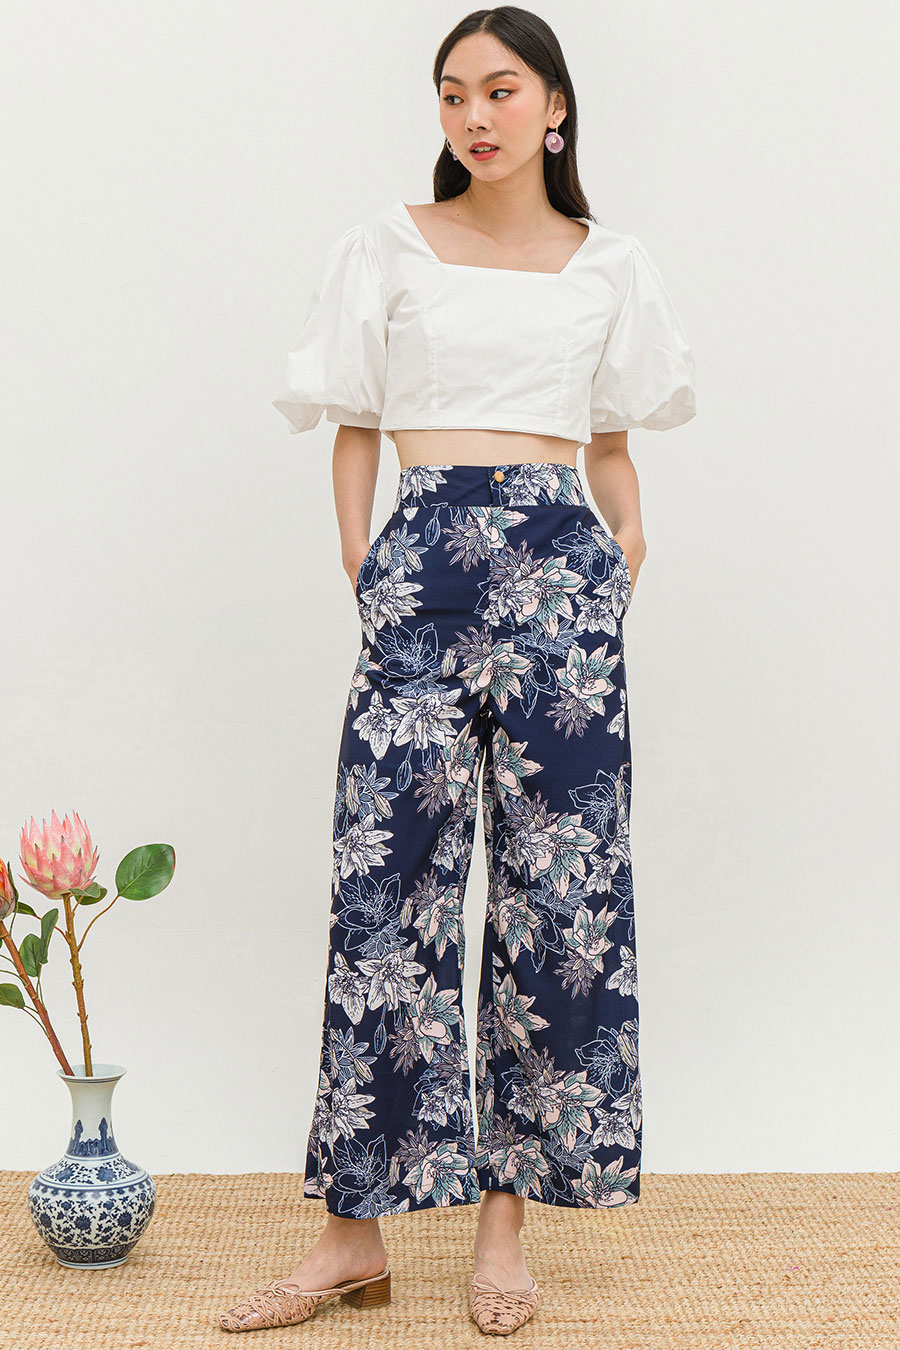 *BO* BOCUSE PANTS - MIDNIGHT LOTUS [BY MODPARADE]